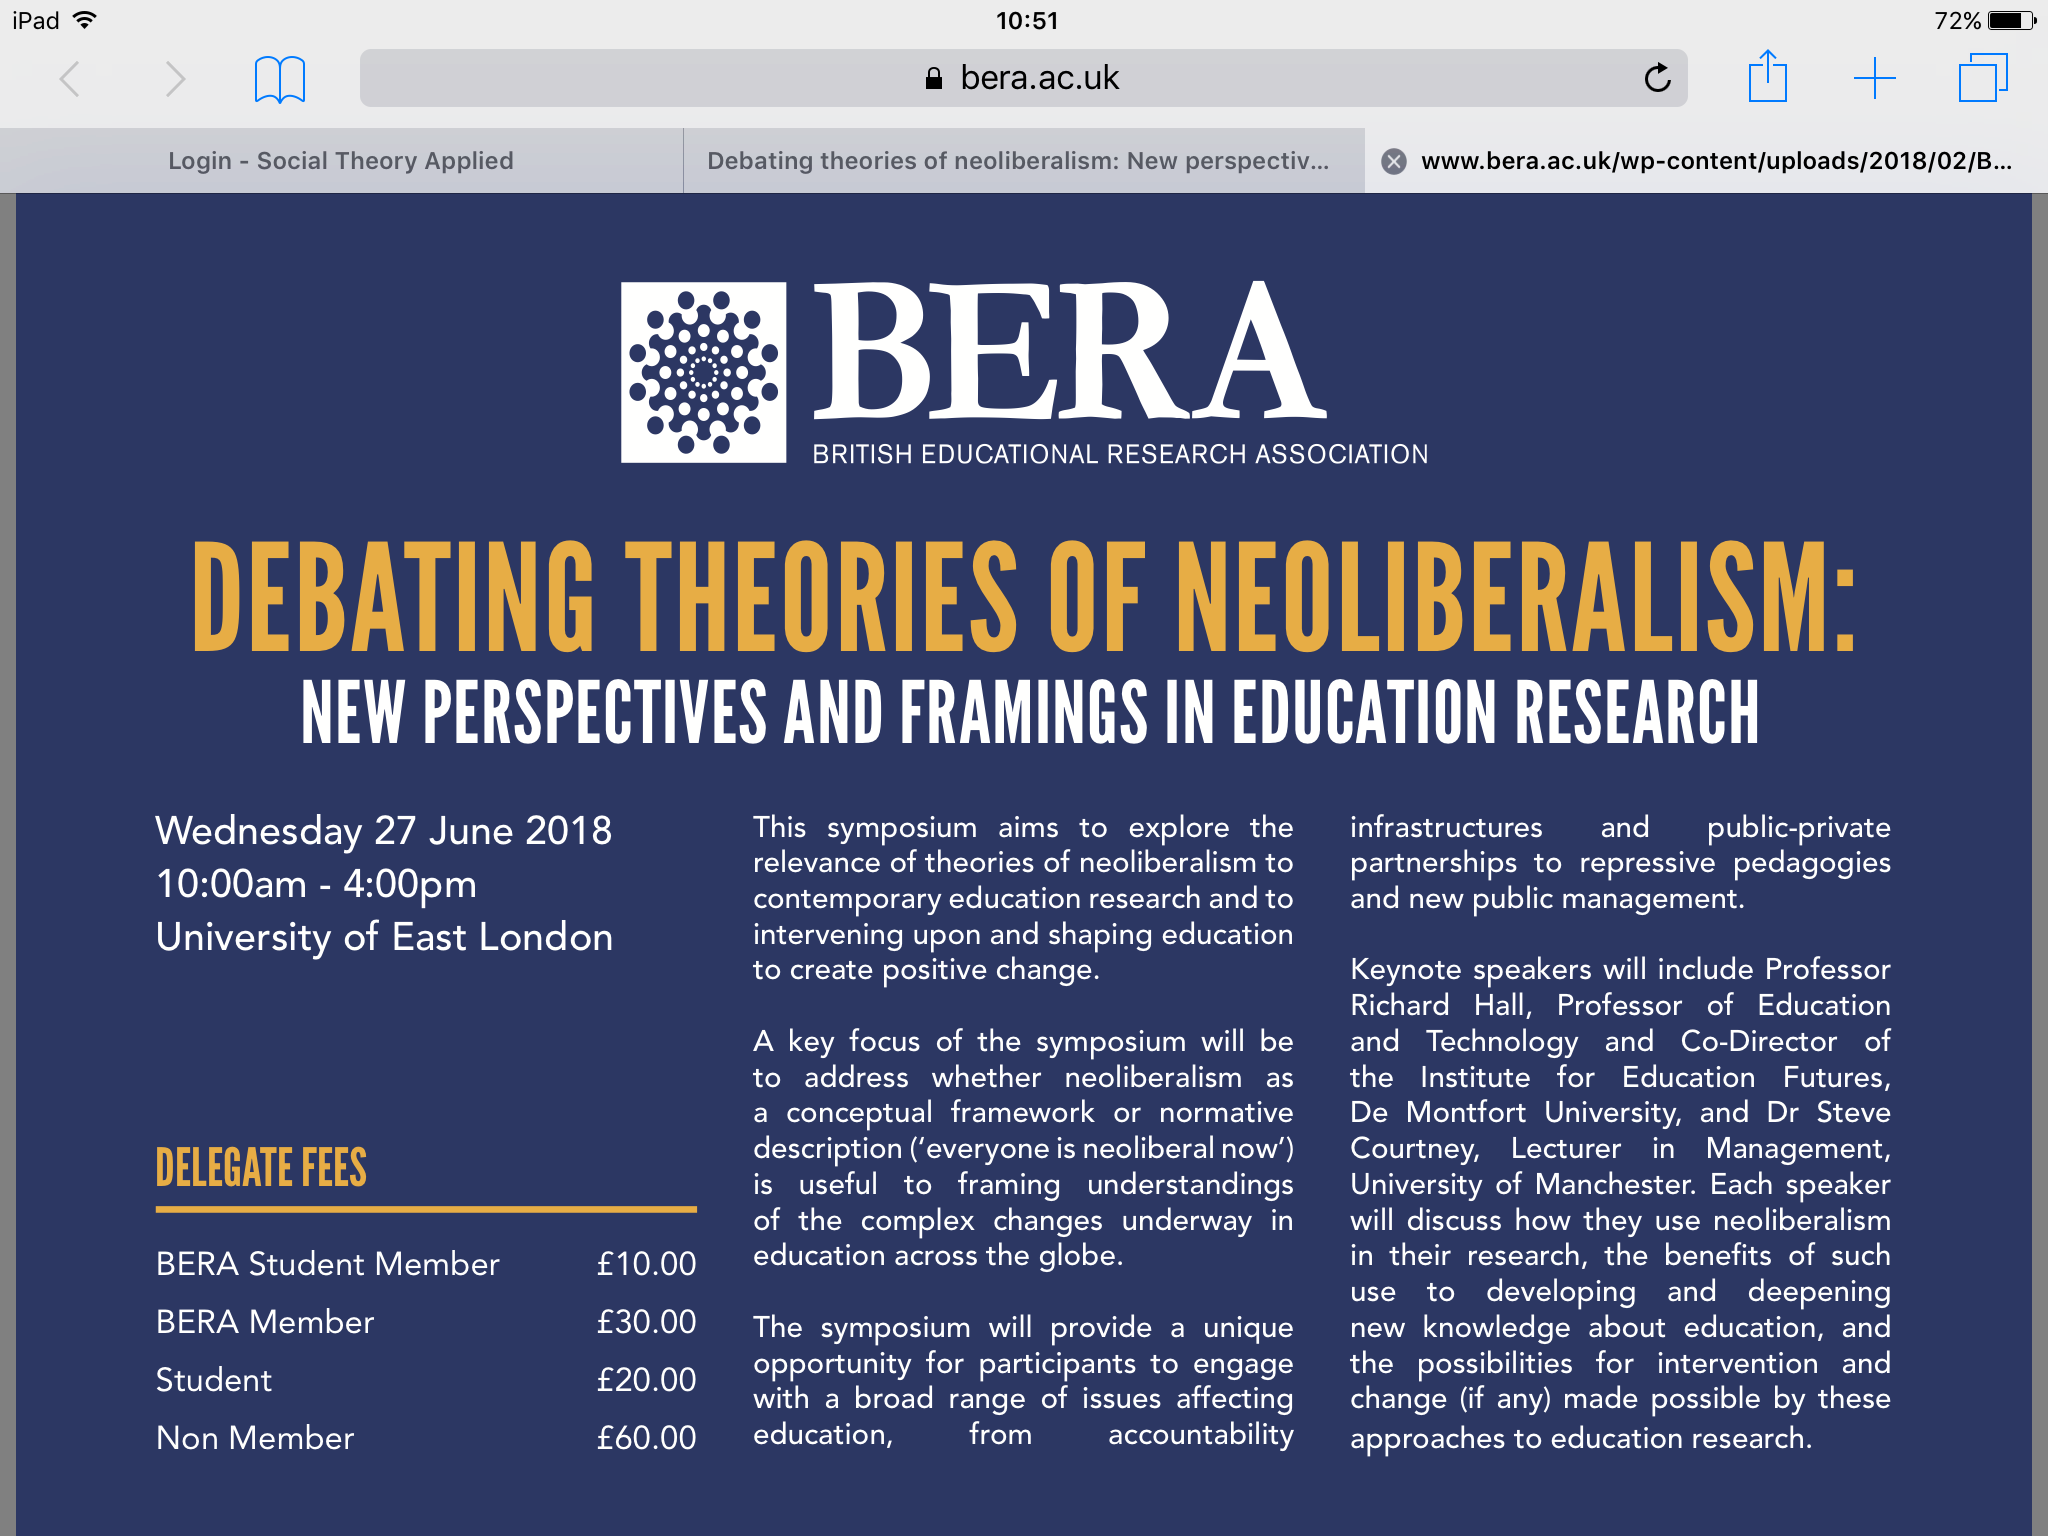 Debating theories of neoliberalism: New perspectives and framings in education research,